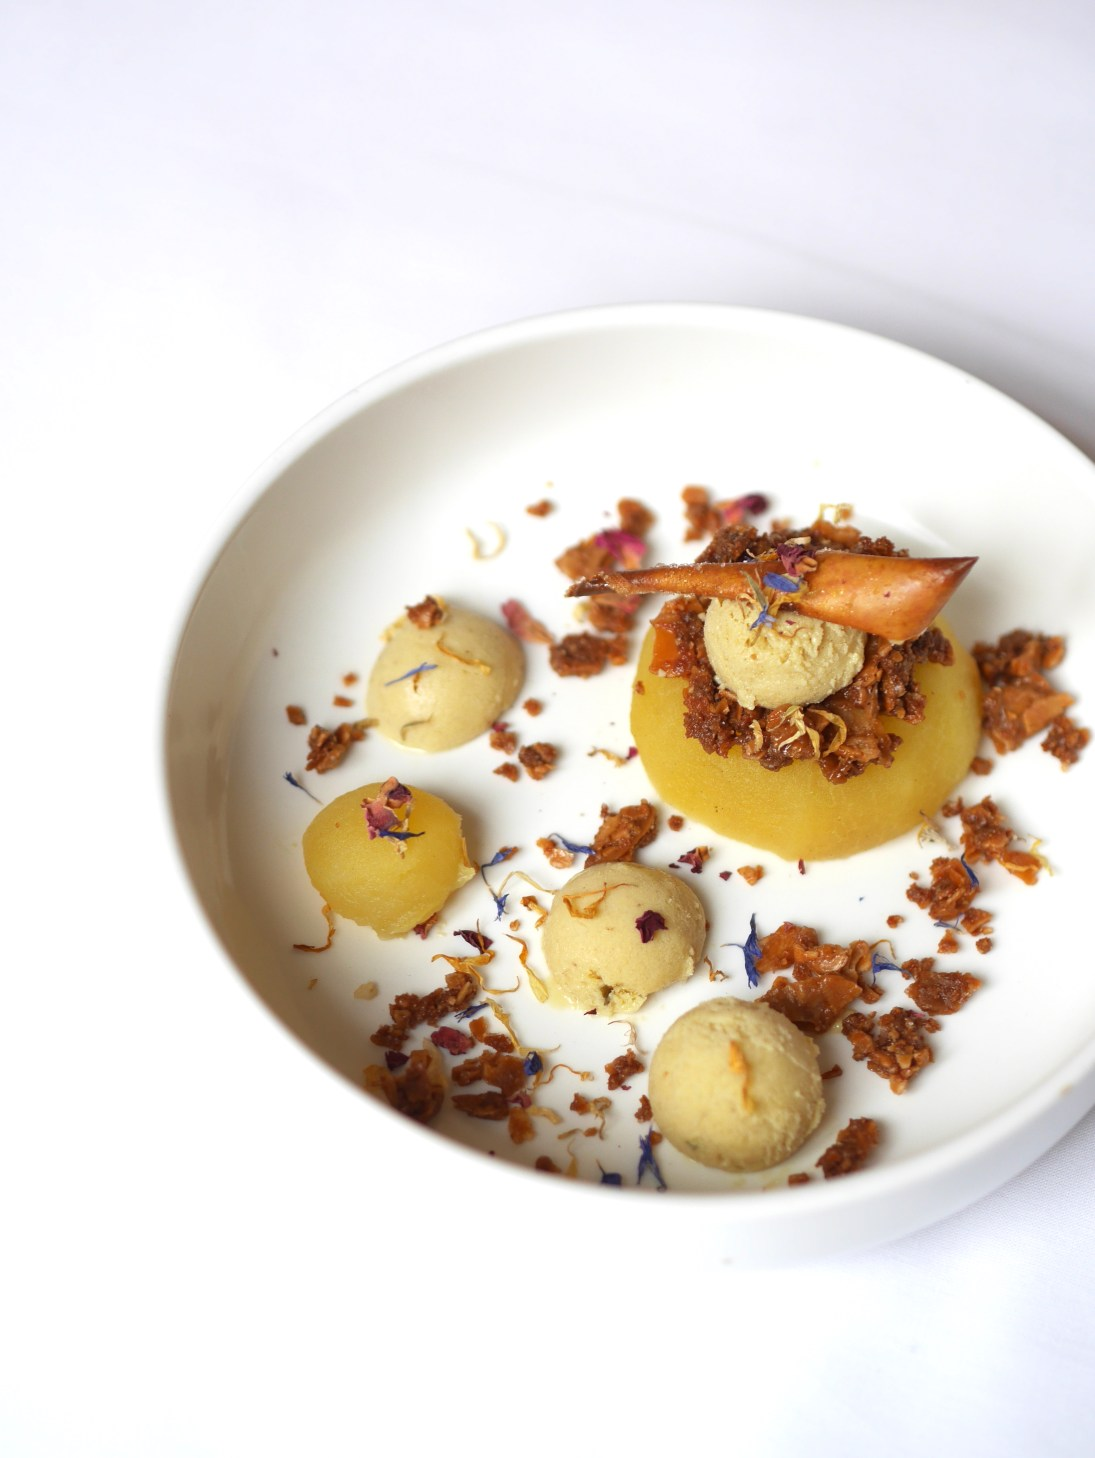 woodmoodfood-blog-culinaire-recette-facile-glace-foin-pomme-pochée-vin-riesling-alsace